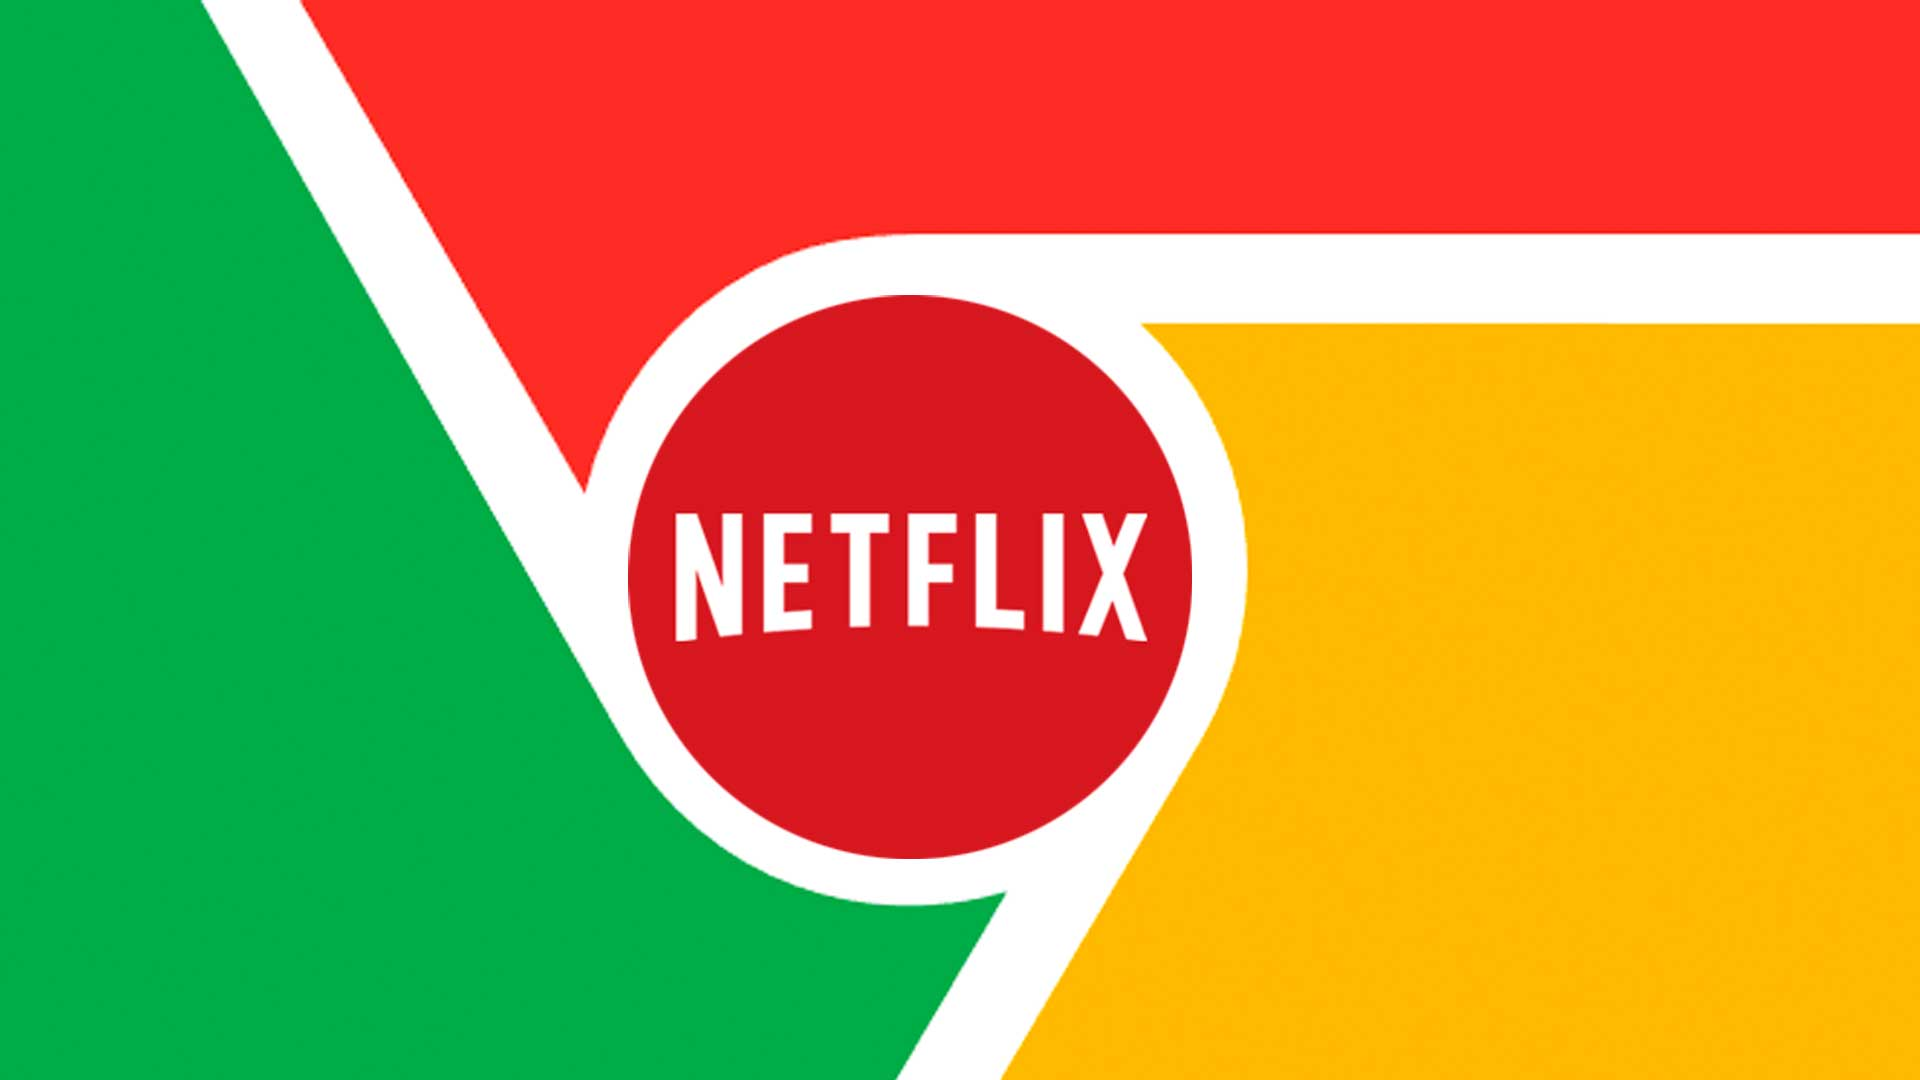 10 Chrome Extensions to Supercharge Your Netflix Experience | TechWiser